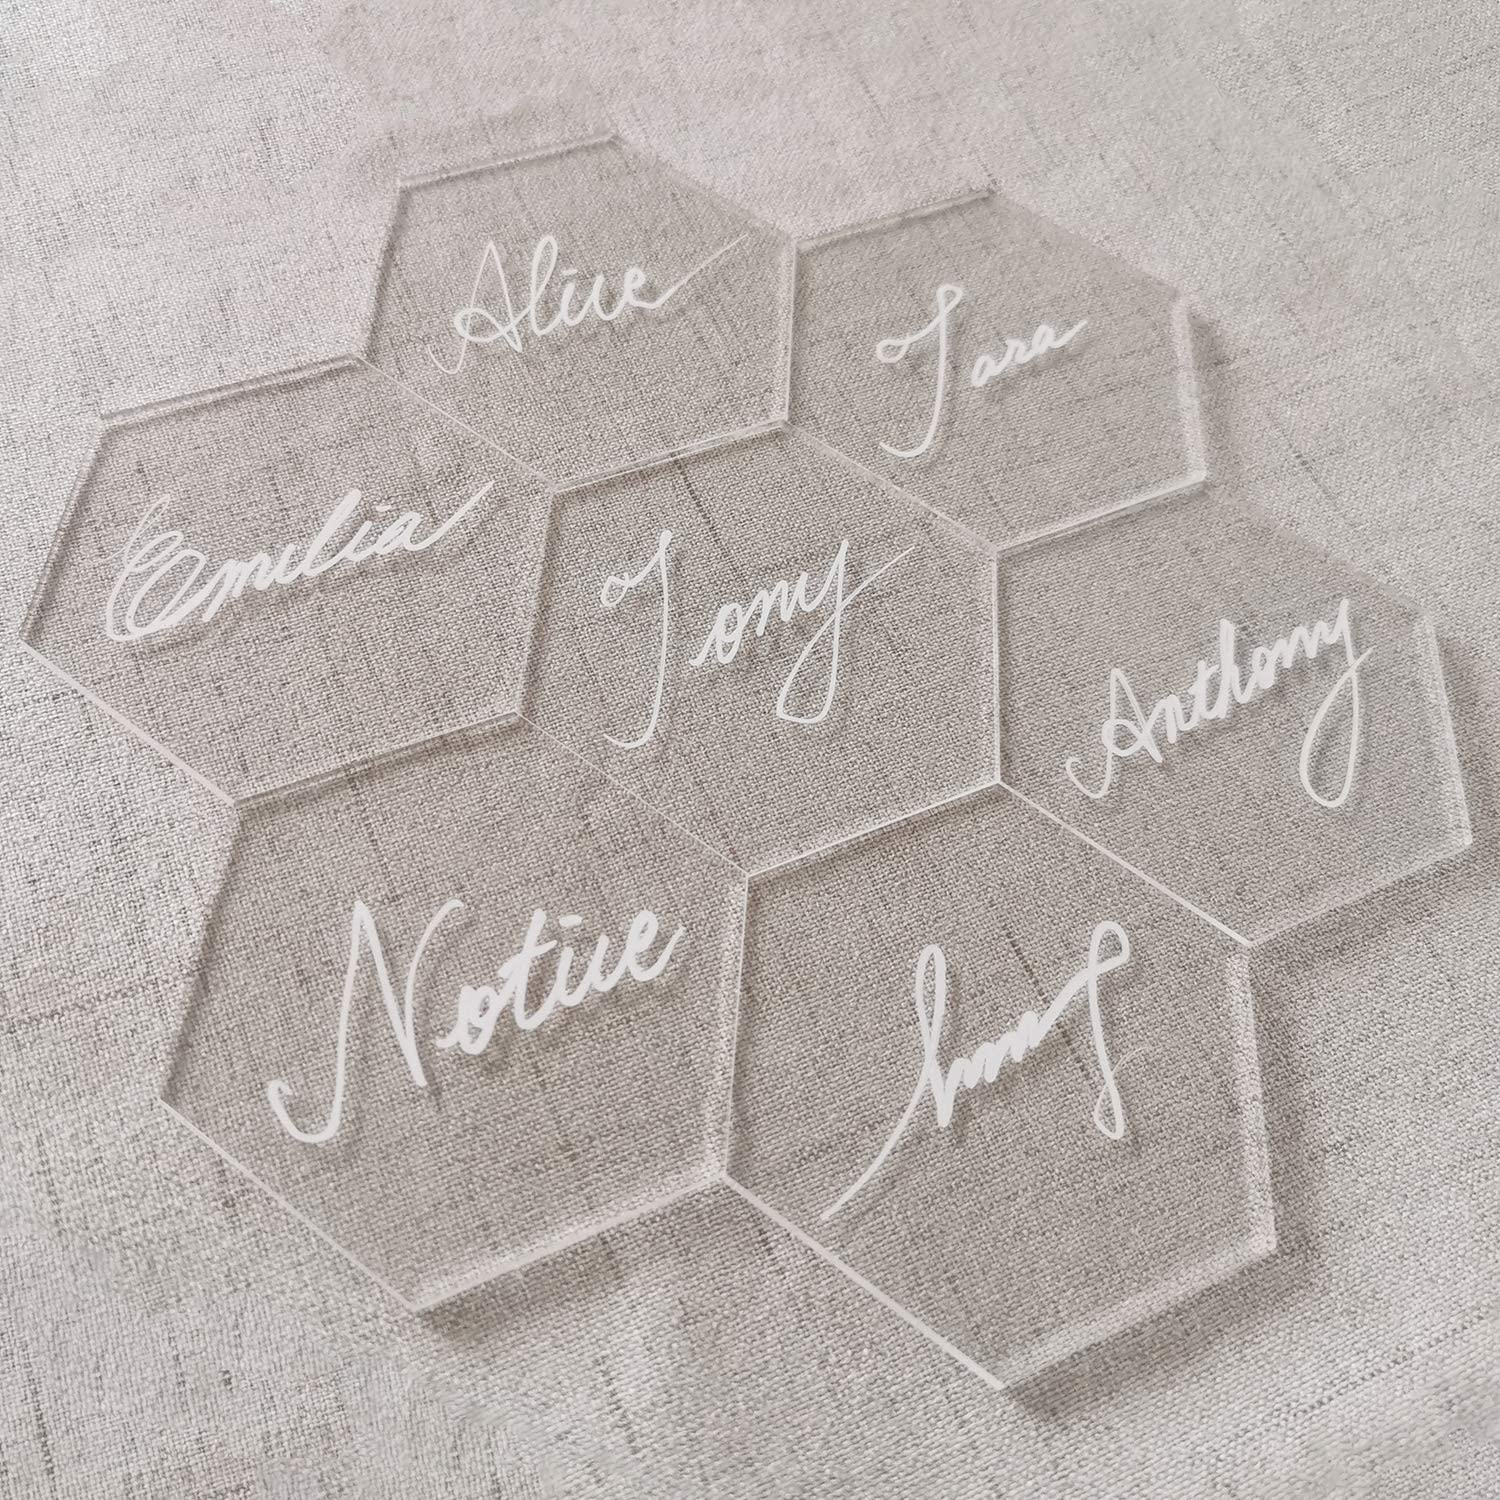 Set of wedding place cards name cards name cards wedding wedding table signs acrylic place cards acrylic place cards